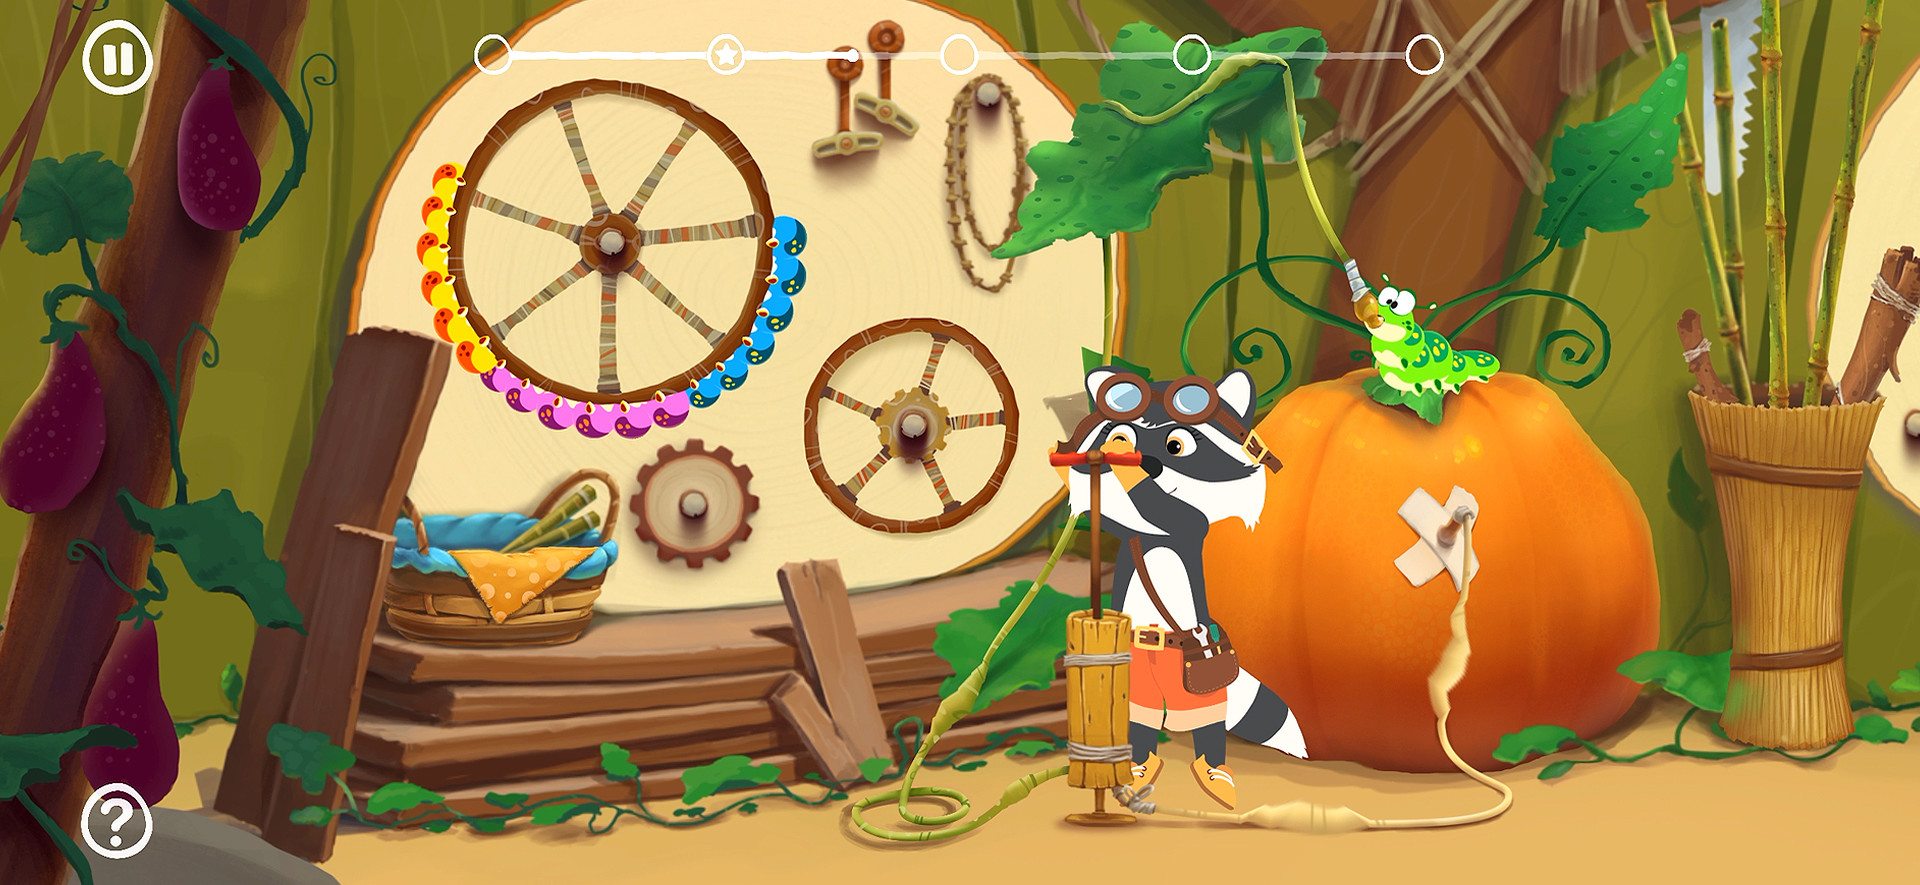 Jungle town: birthday quest for mac catalina